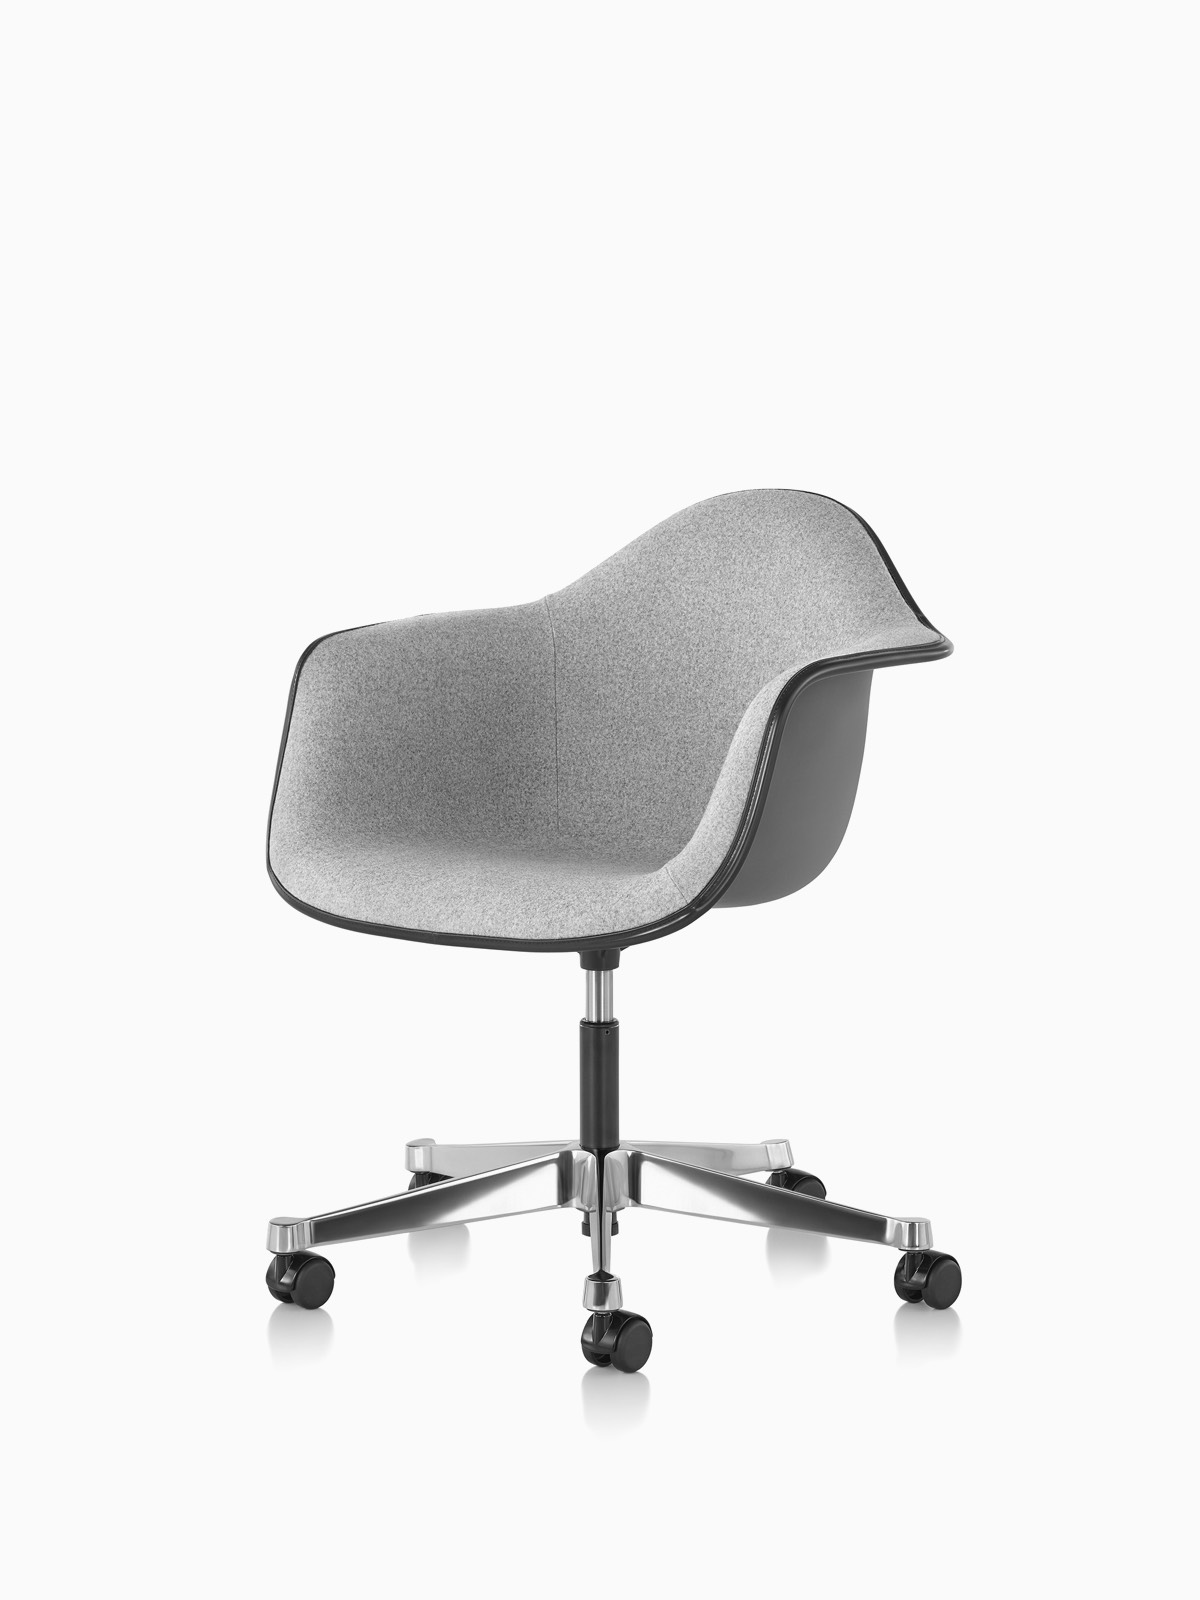 Eames Chair Bim Office Chairs Herman Miller